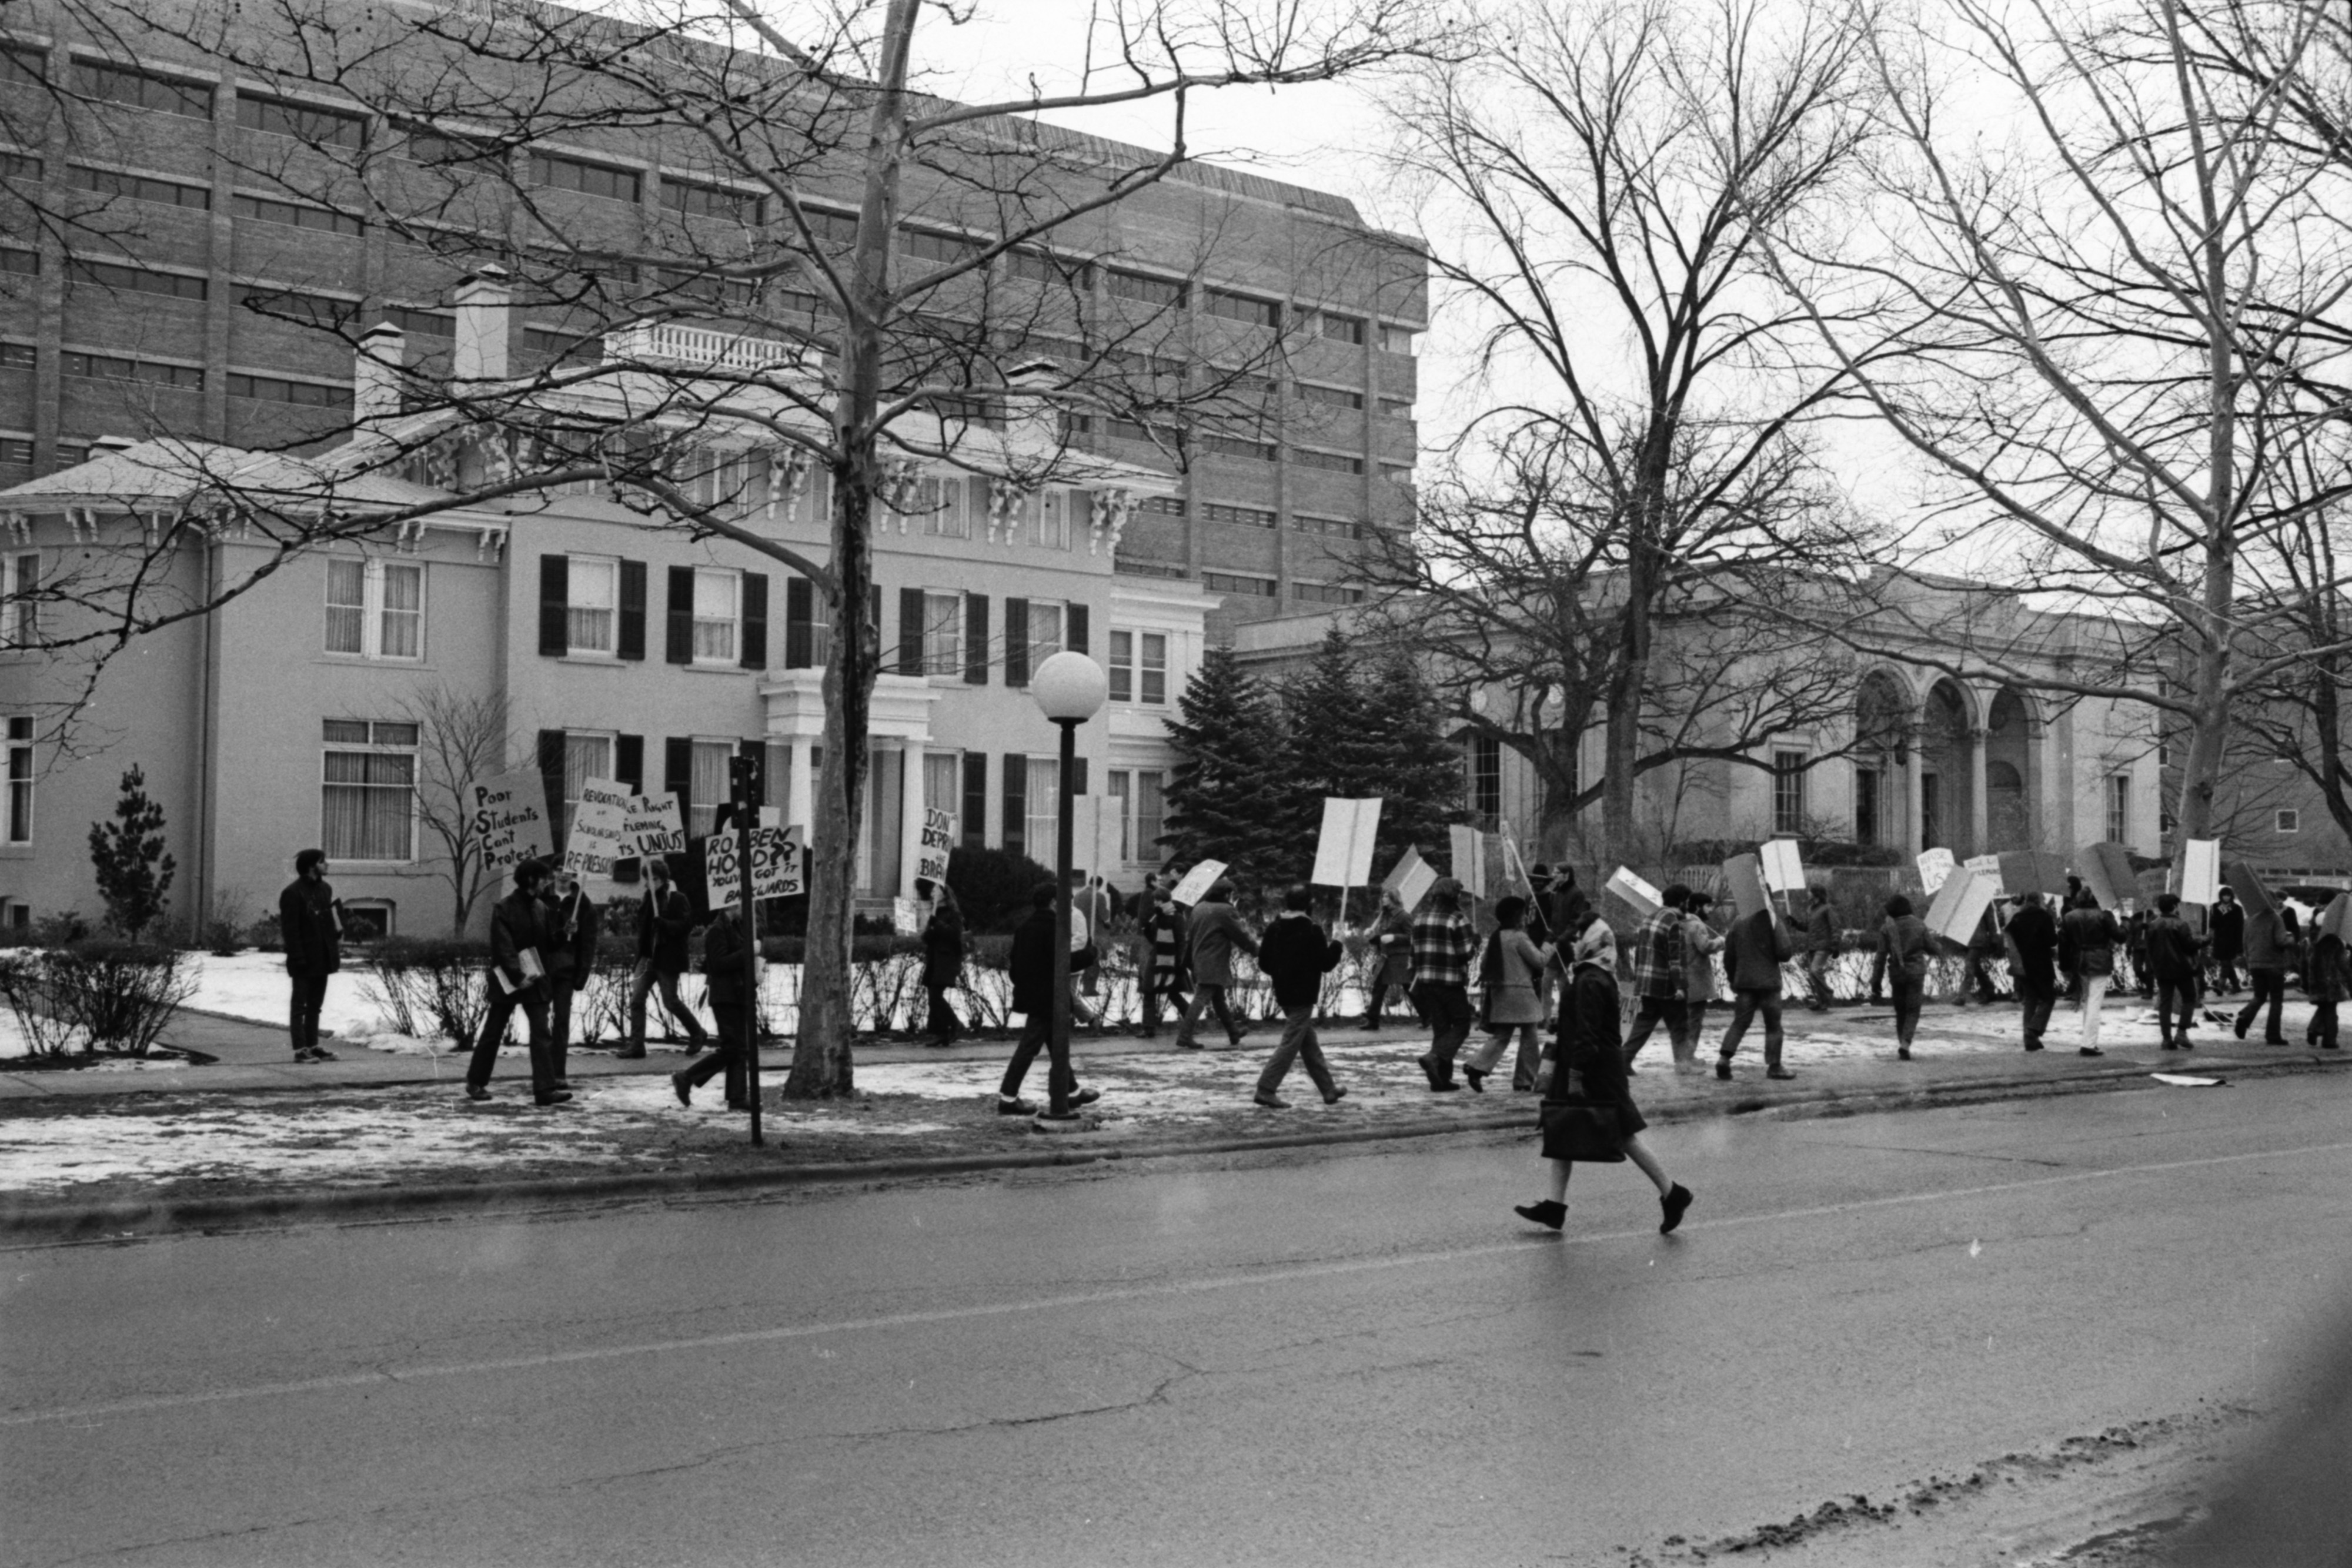 University of Michigan Students Protest In Front of President's House, February 6, 1970 image